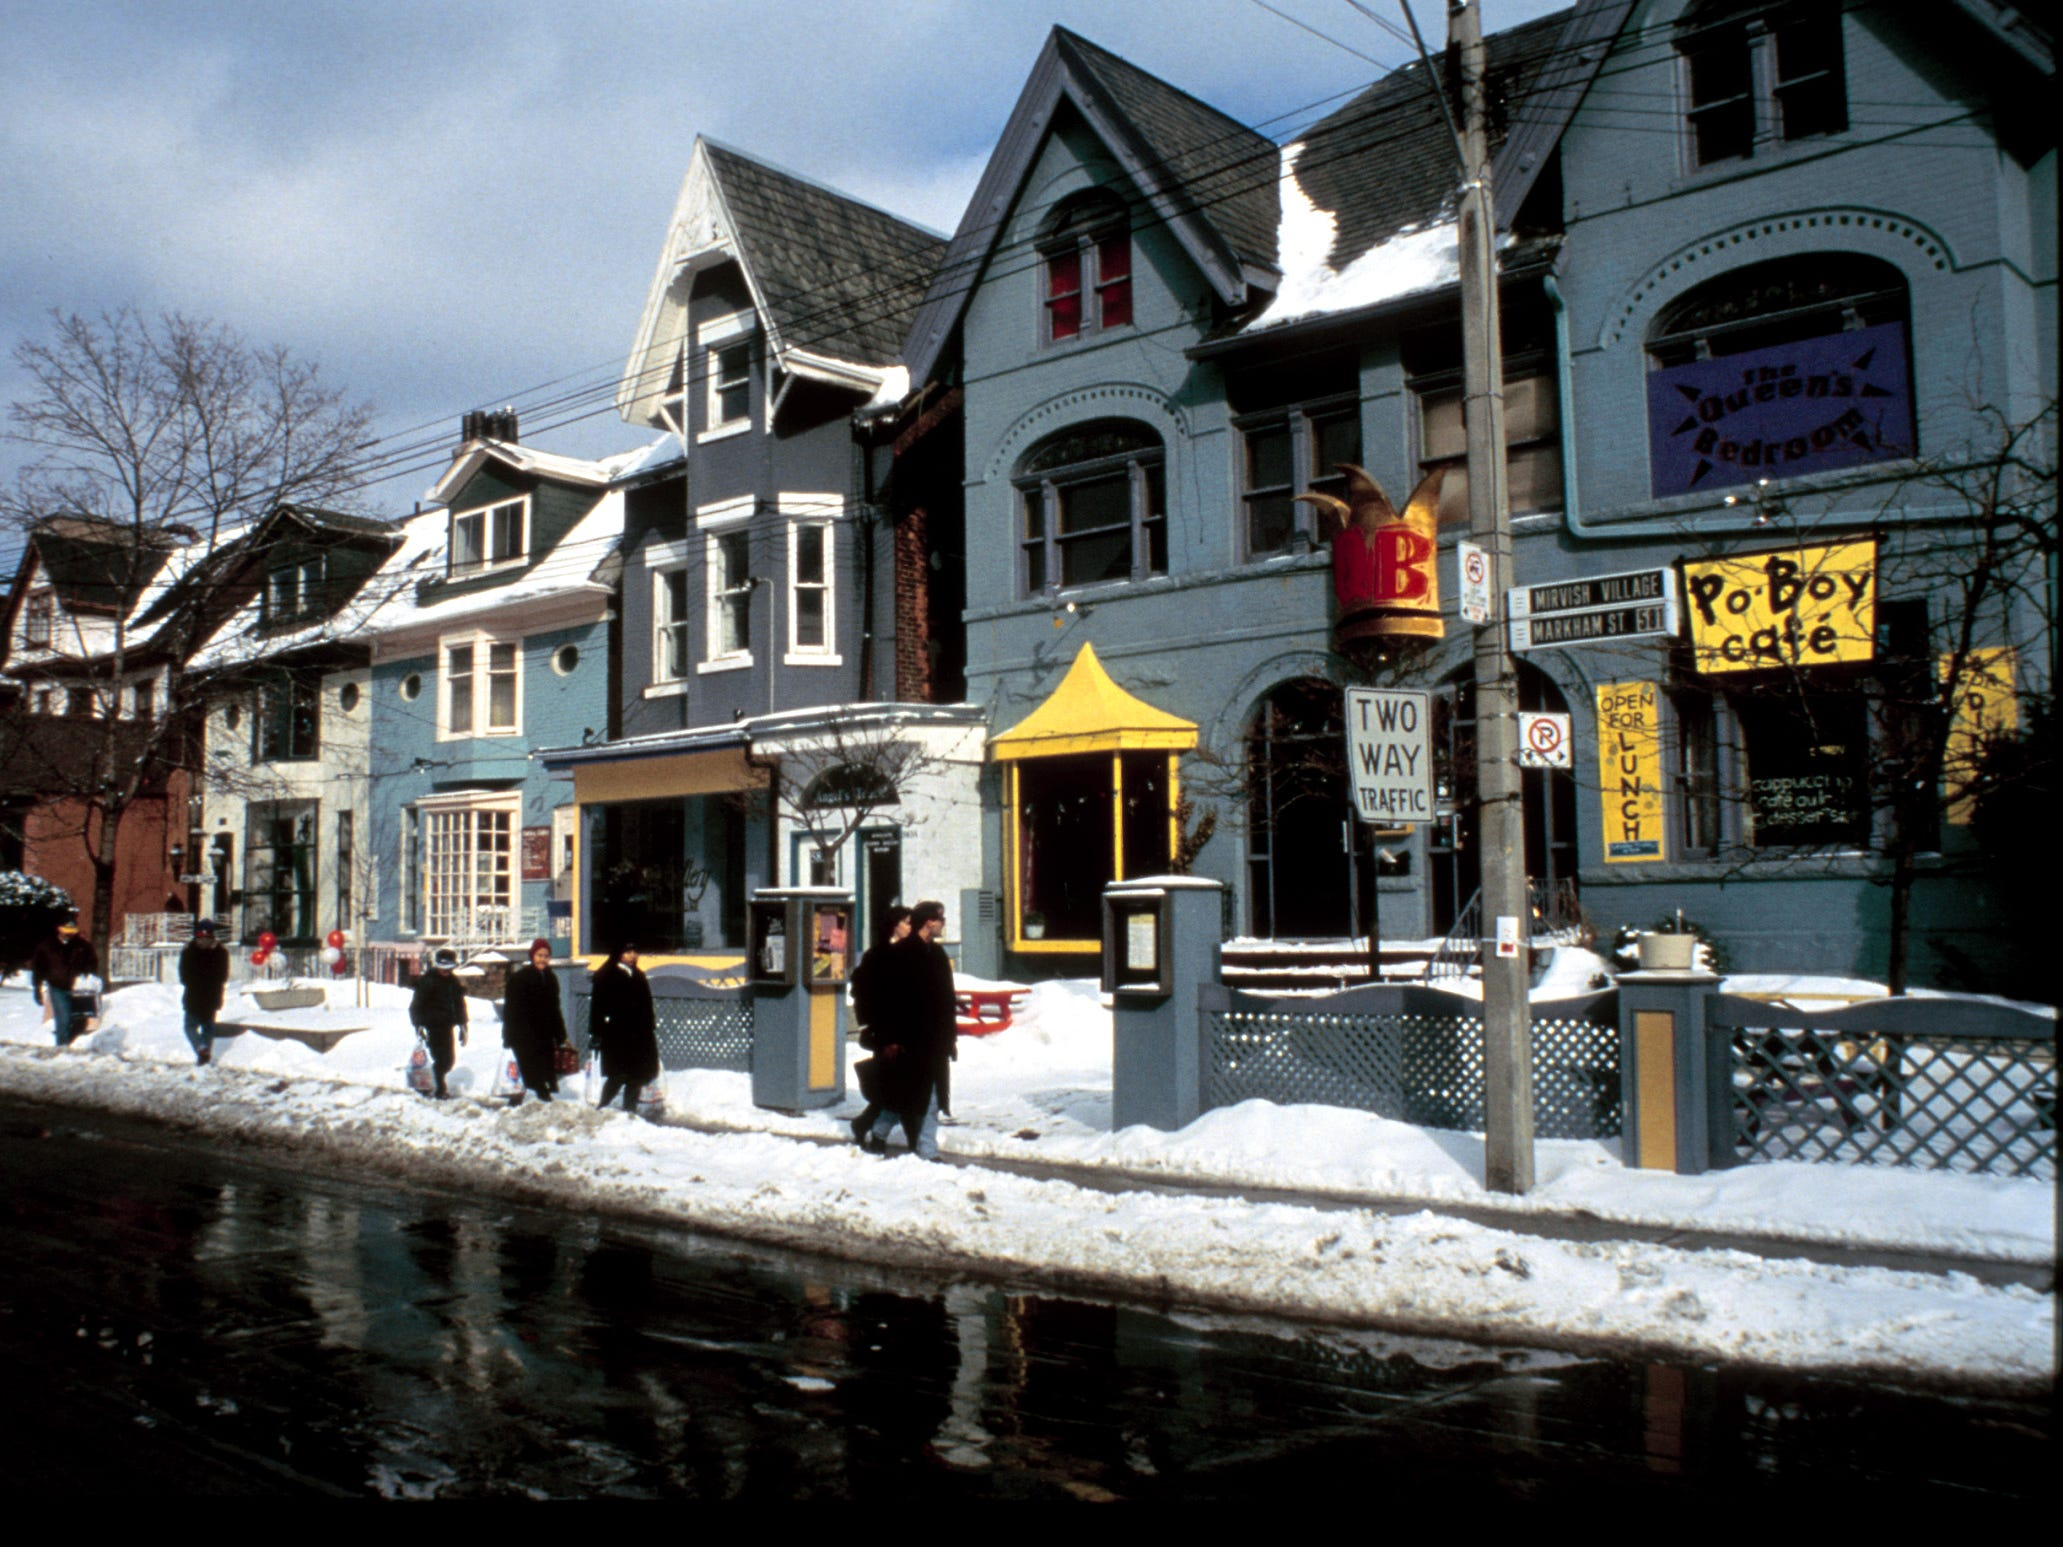 Toronto is one of Travelzoo's top international destinations for January. Mirvish Village is a street of independent businesses offering a diverse selection of antiques, art, architecture and wine-making, housed in a group of Victorian-style buildings.